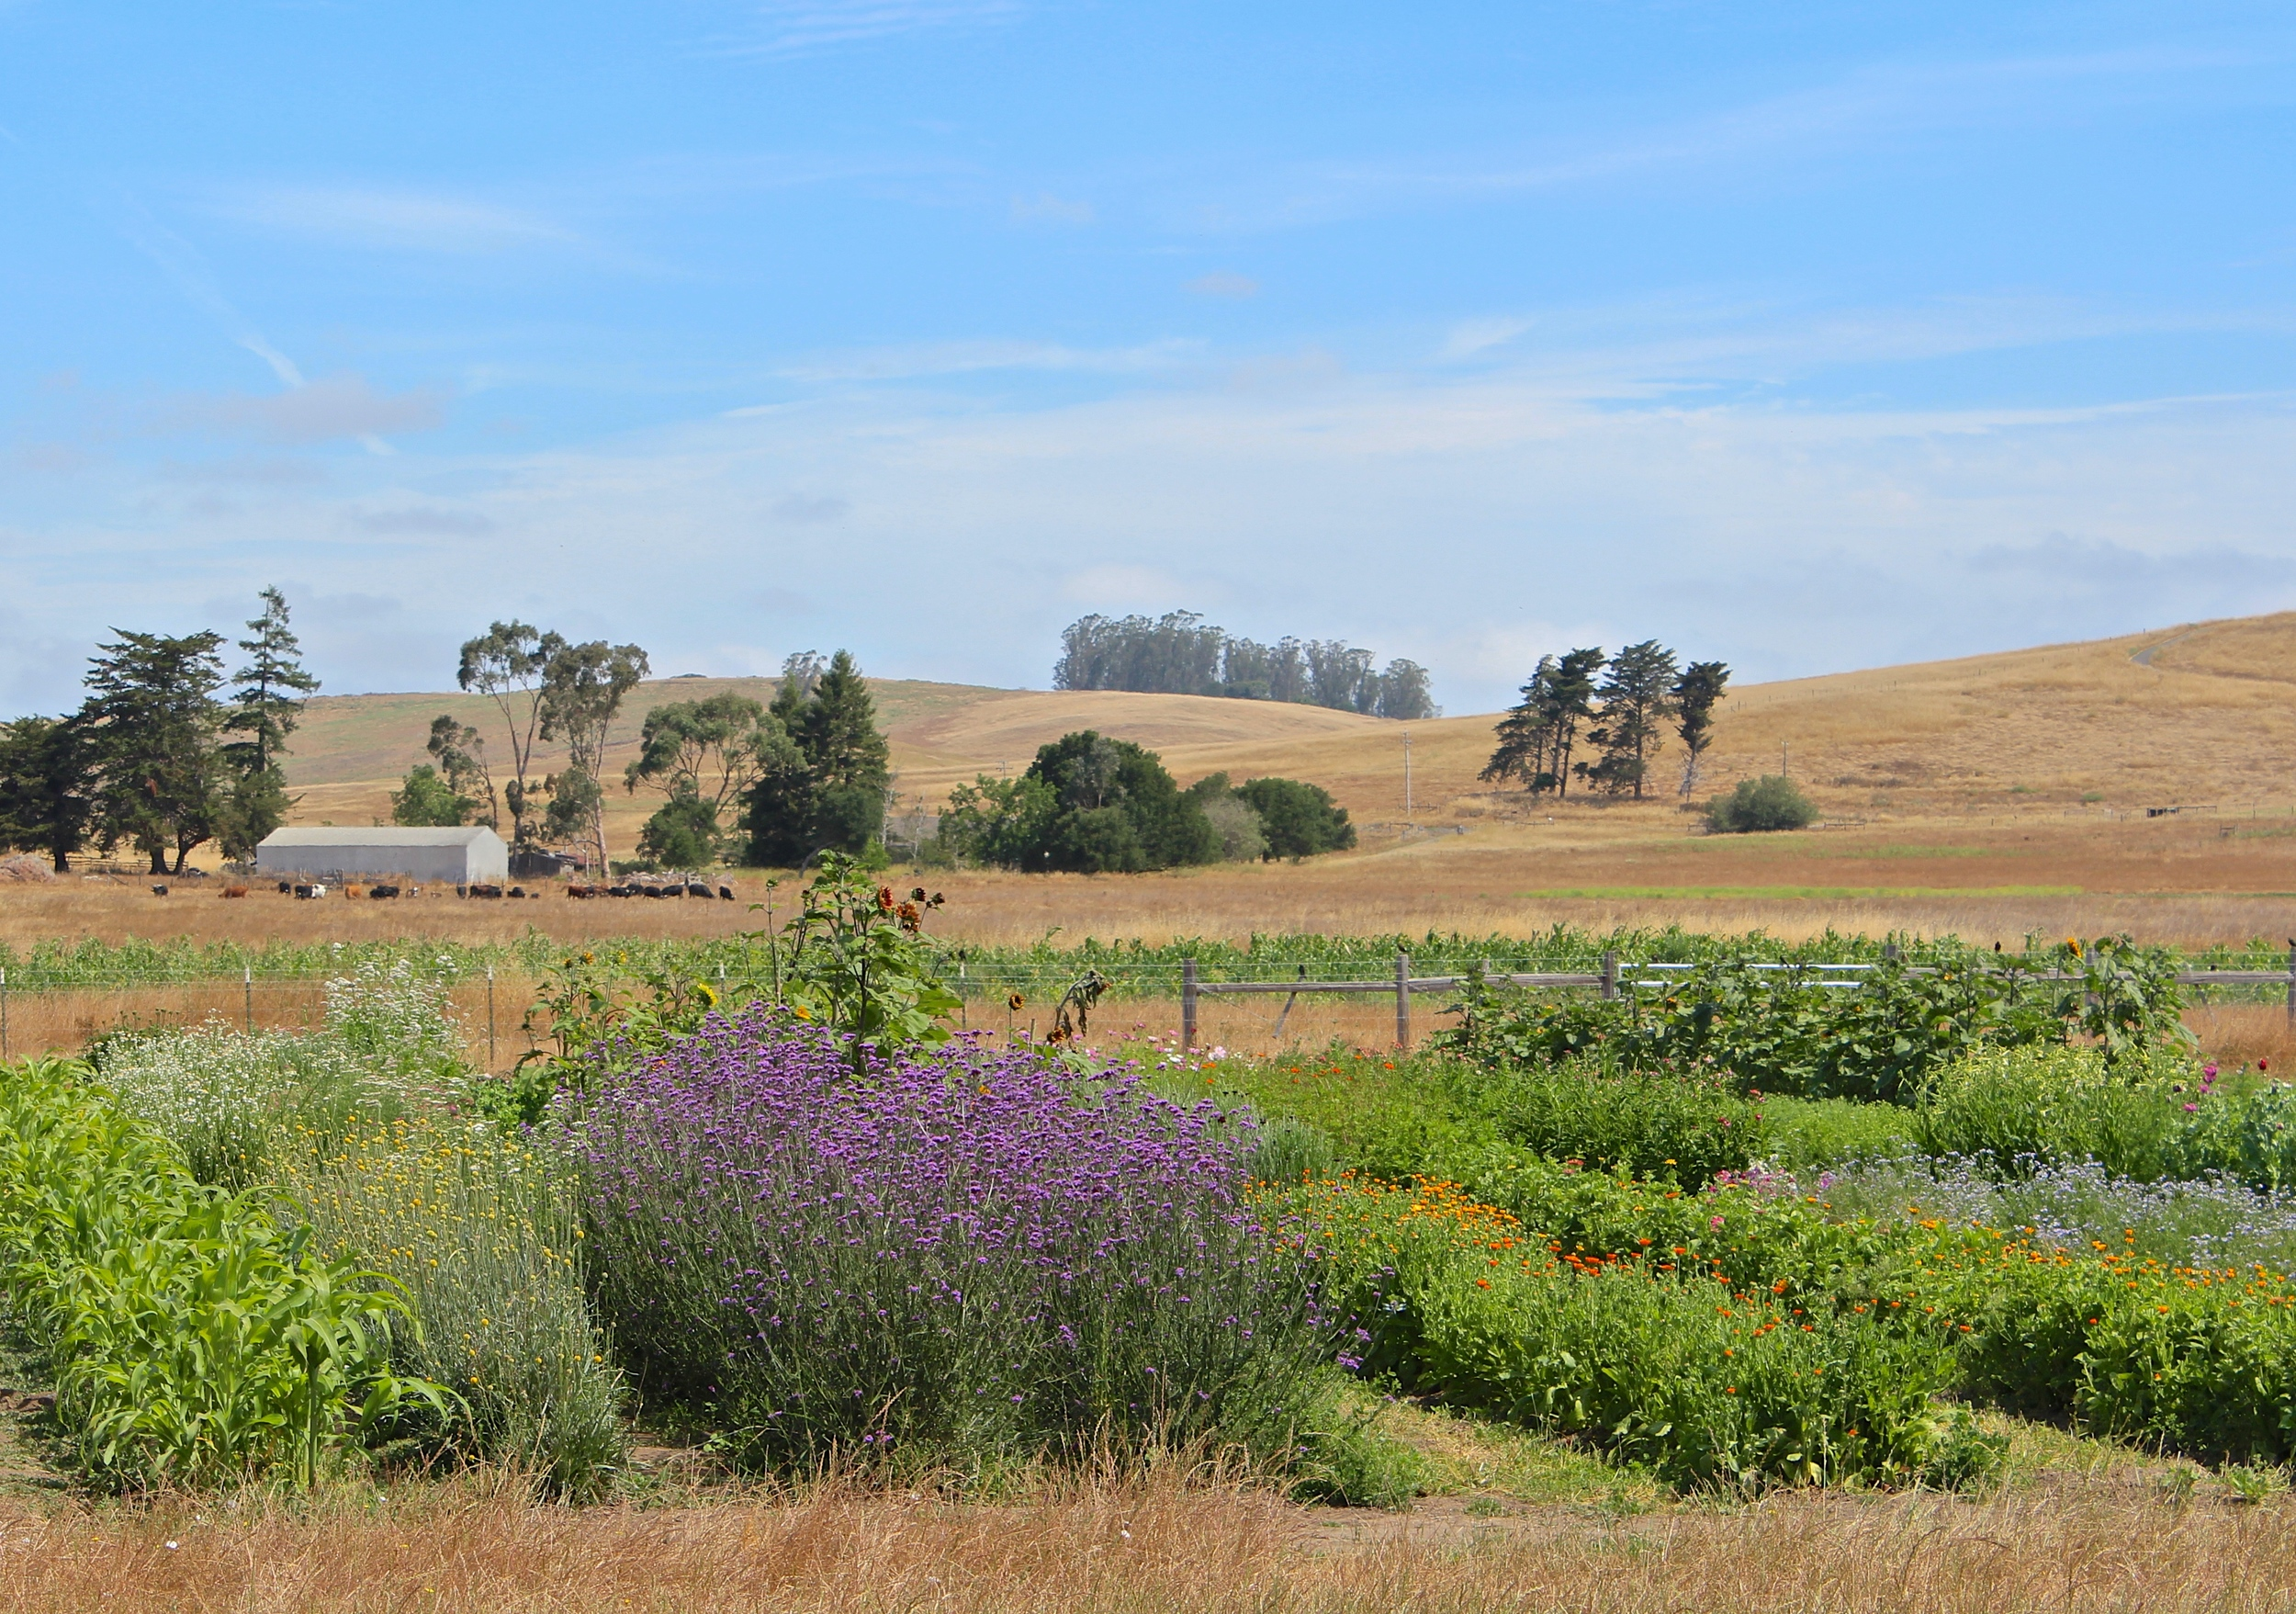 The layers on the farm: flowers, dry corn, cows, and grass